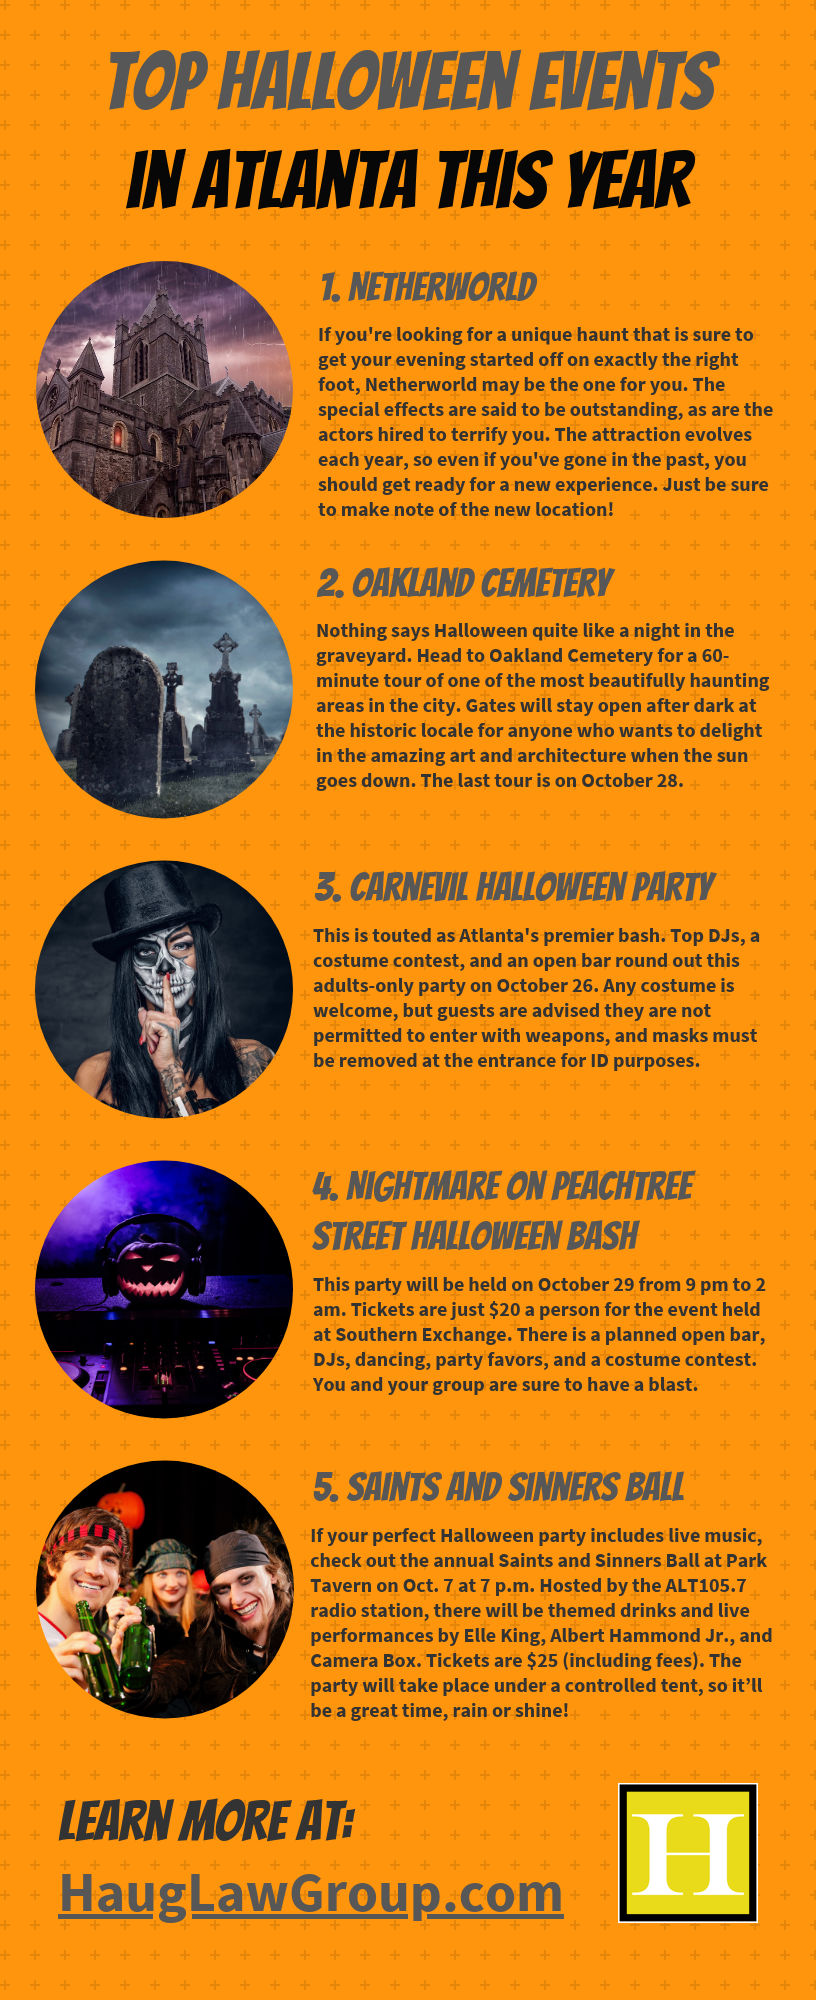 Top Halloween events in Atlanta This Year infographic